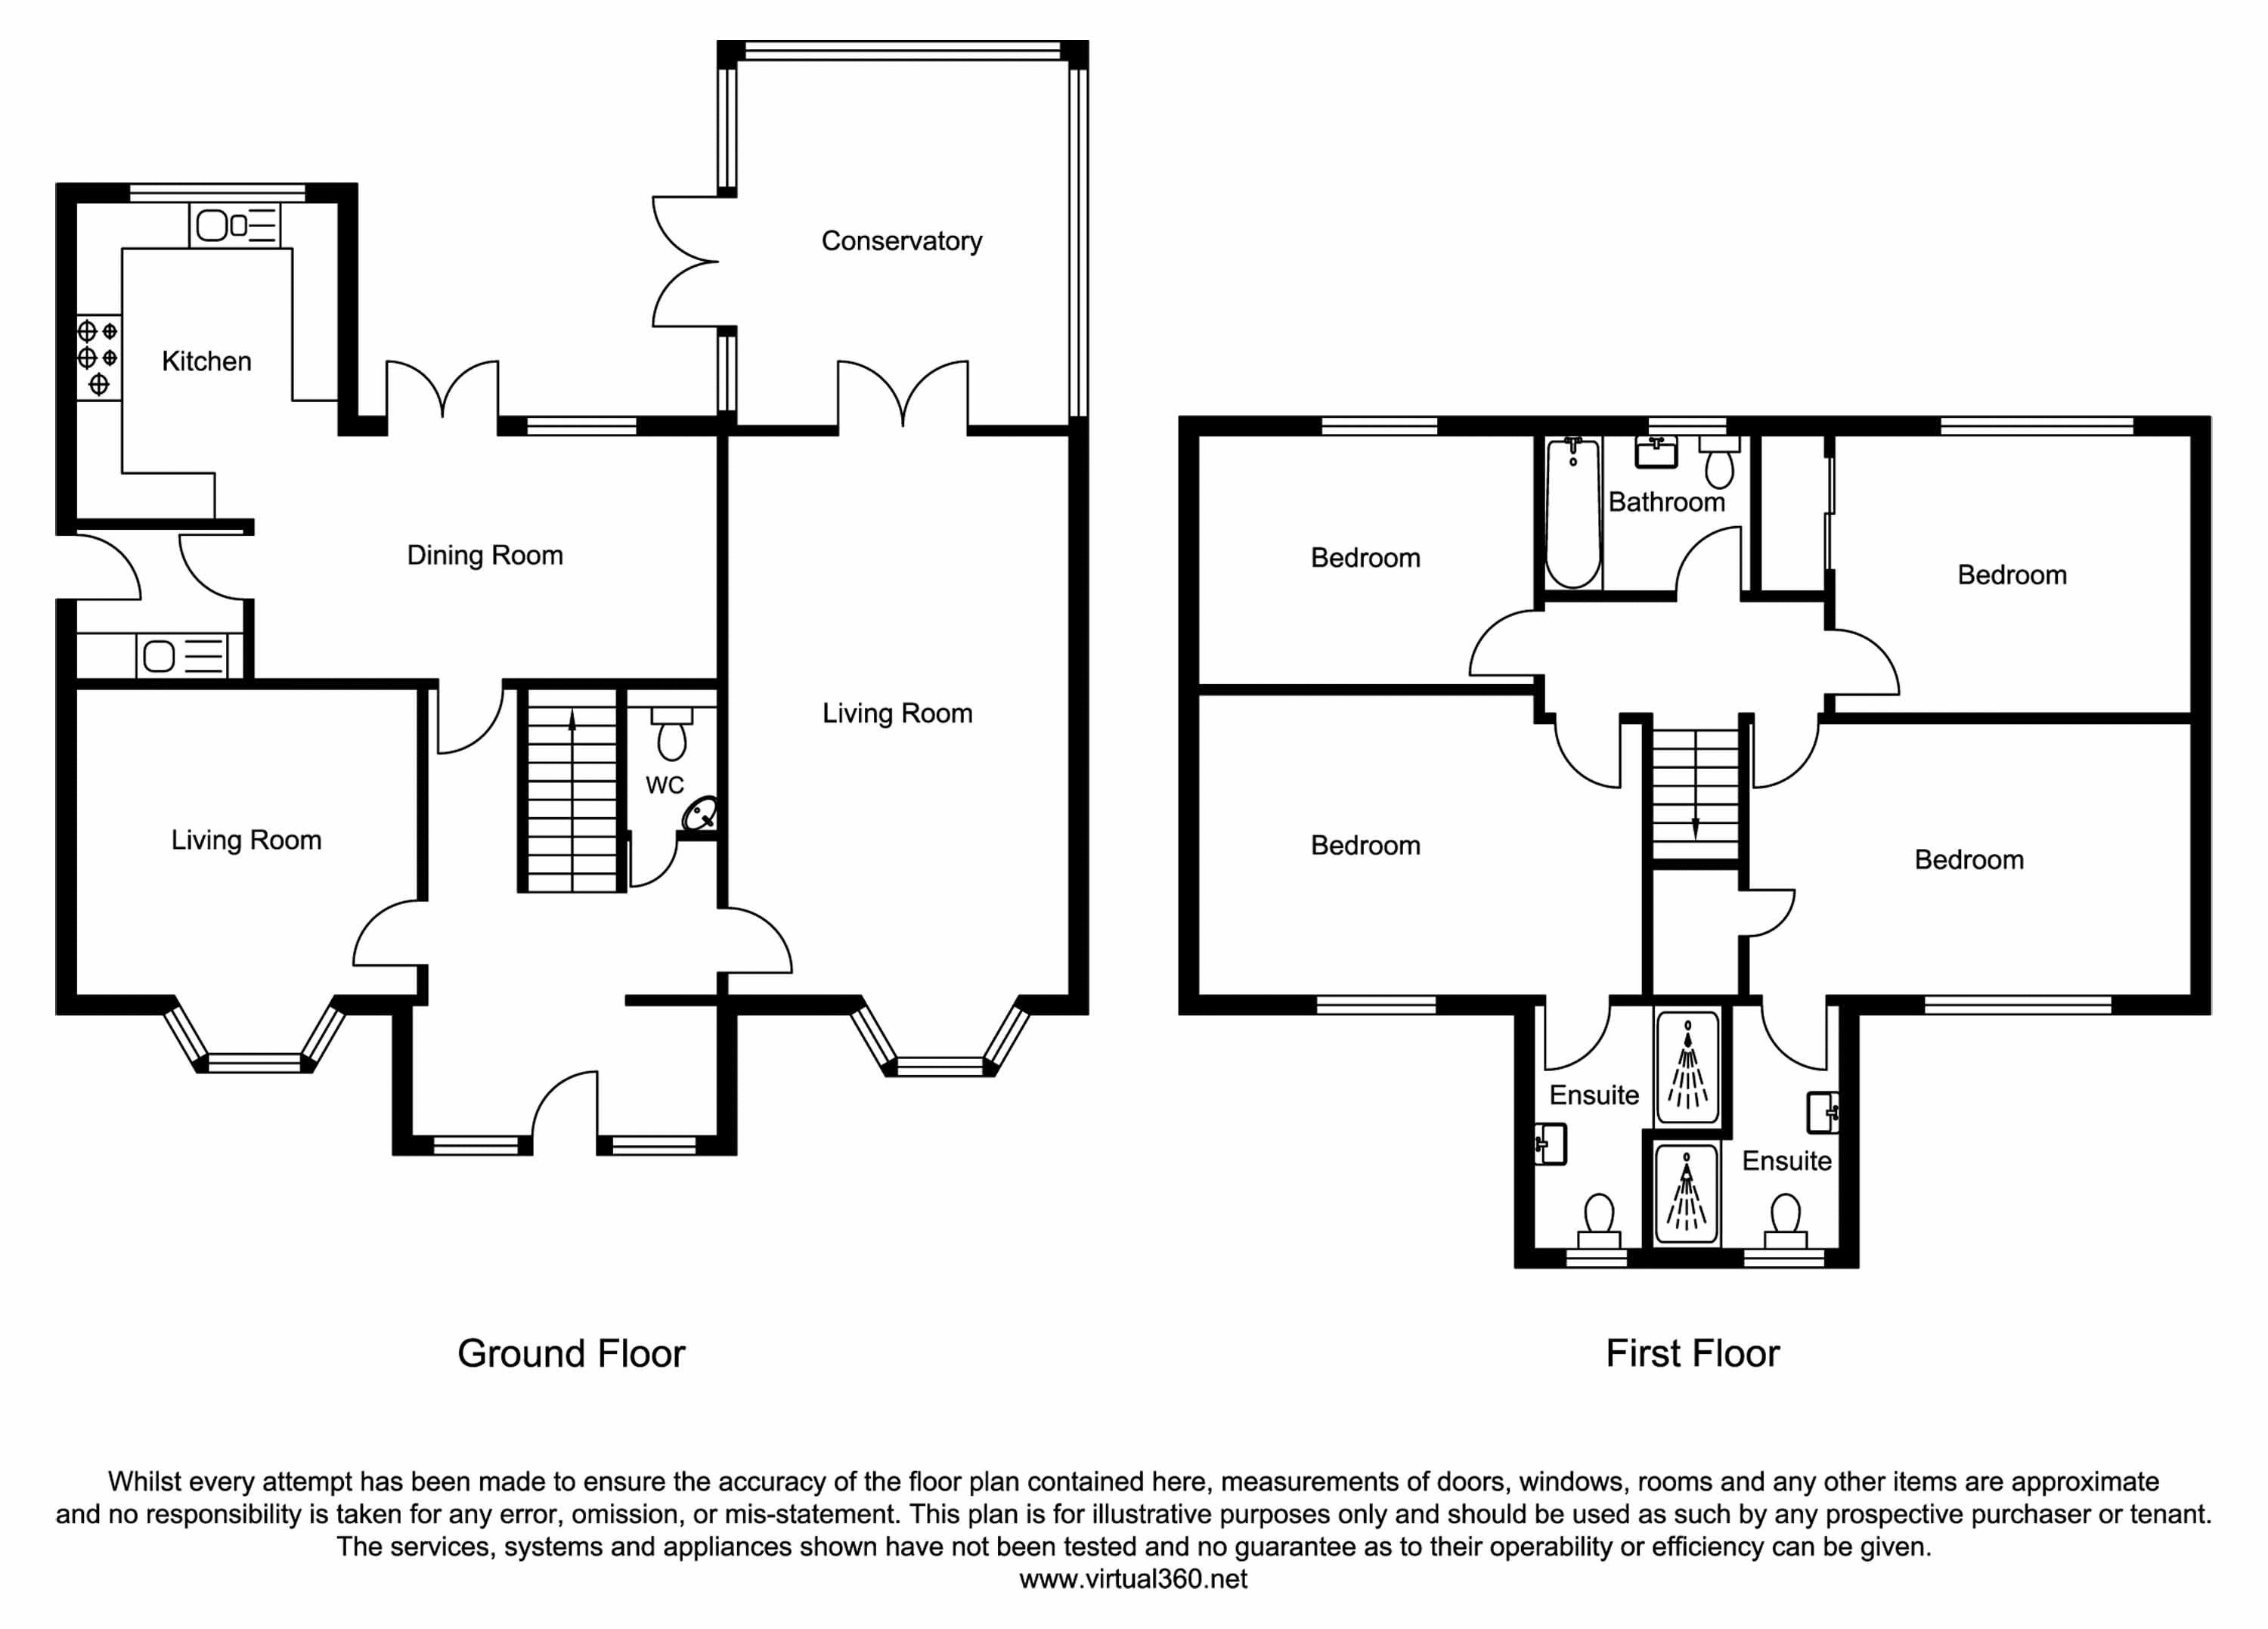 Lullingstone Crescent, Stockton-On-Tees floor plan